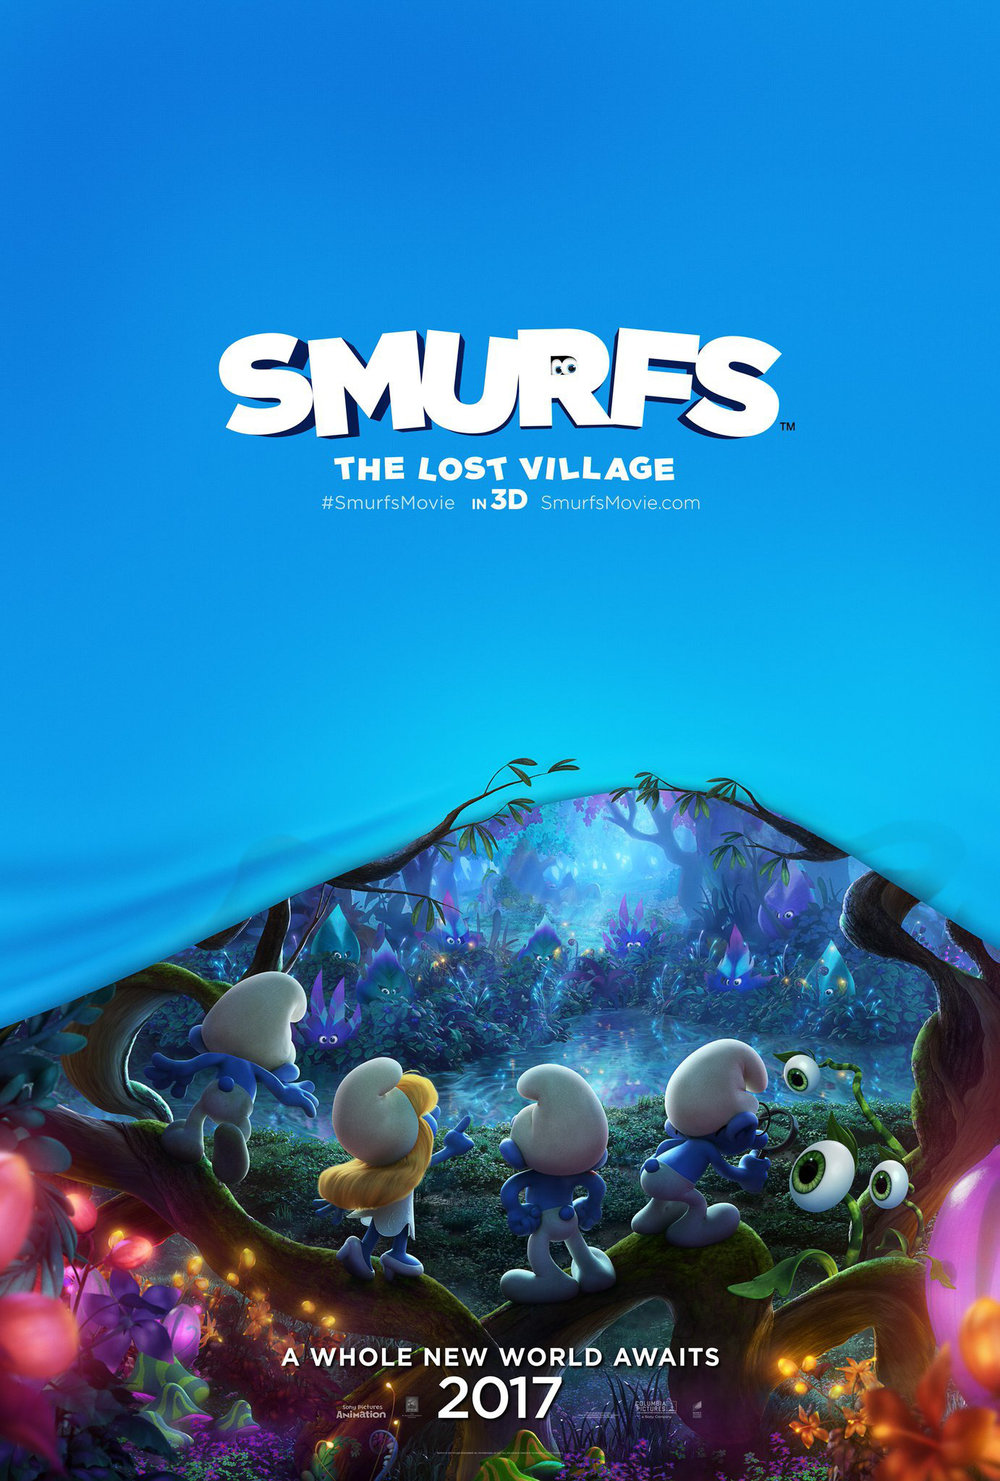 Smurfs: The LOST VILLAGE - Show Technical Lighting Lead @ Sony Imageworks Vancouver